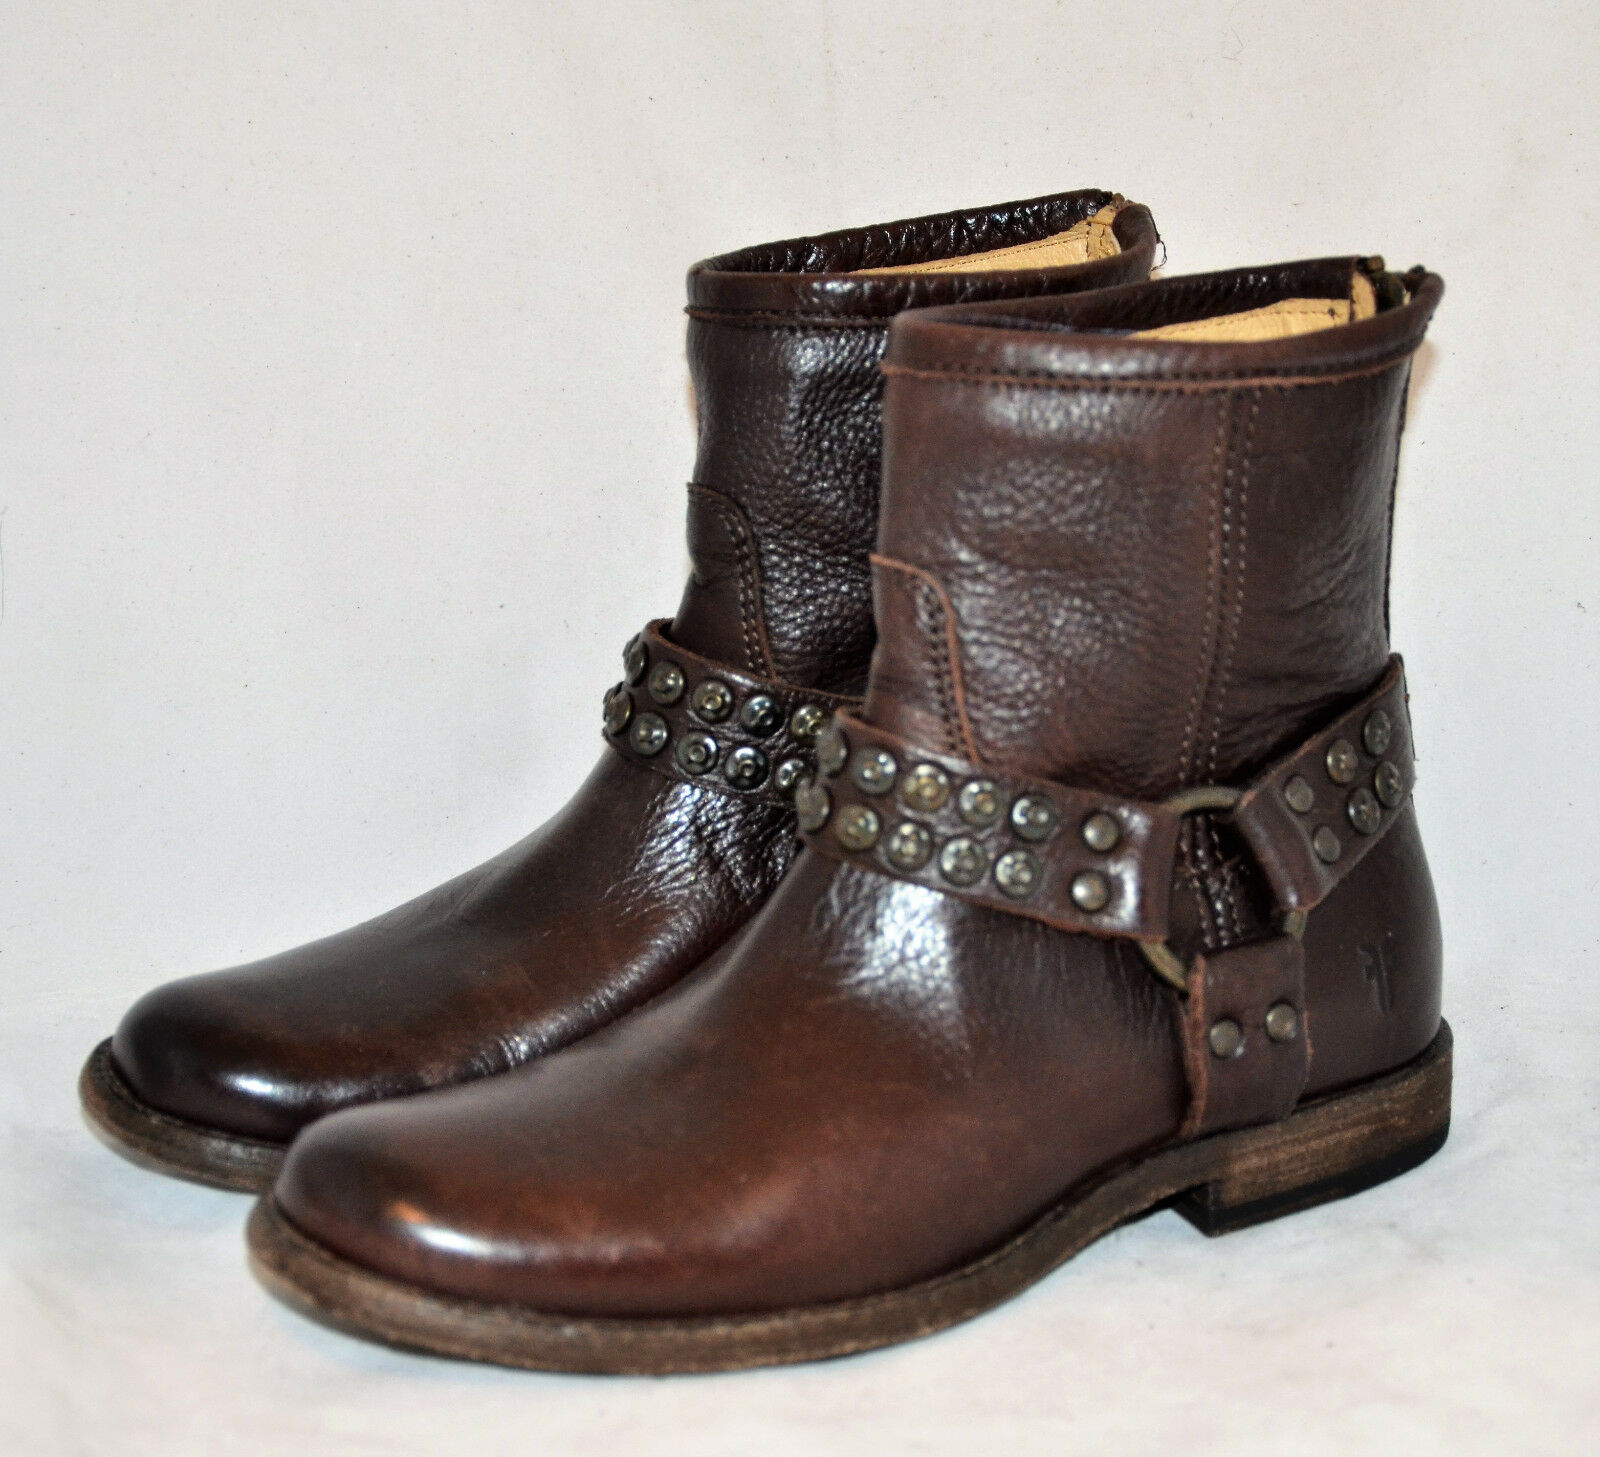 318 Frye Phillip Studded Harness Soft Vintage Leather Boots Dark Brown New 5.5